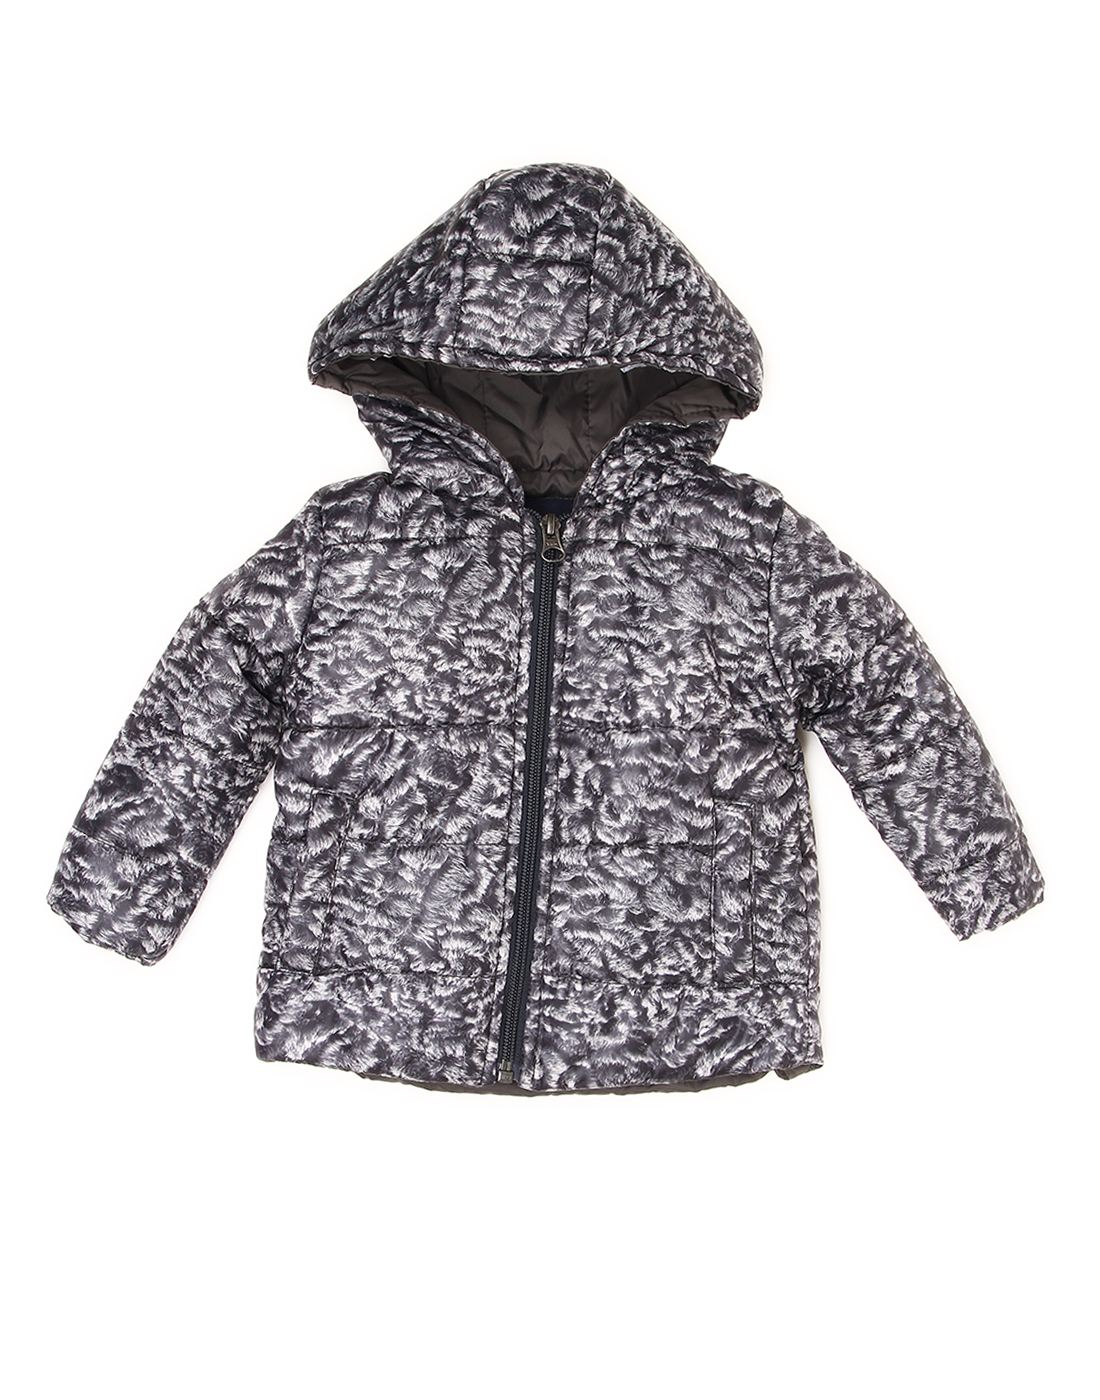 Wingsfield Black Baby Boy Winter Wear Jacket